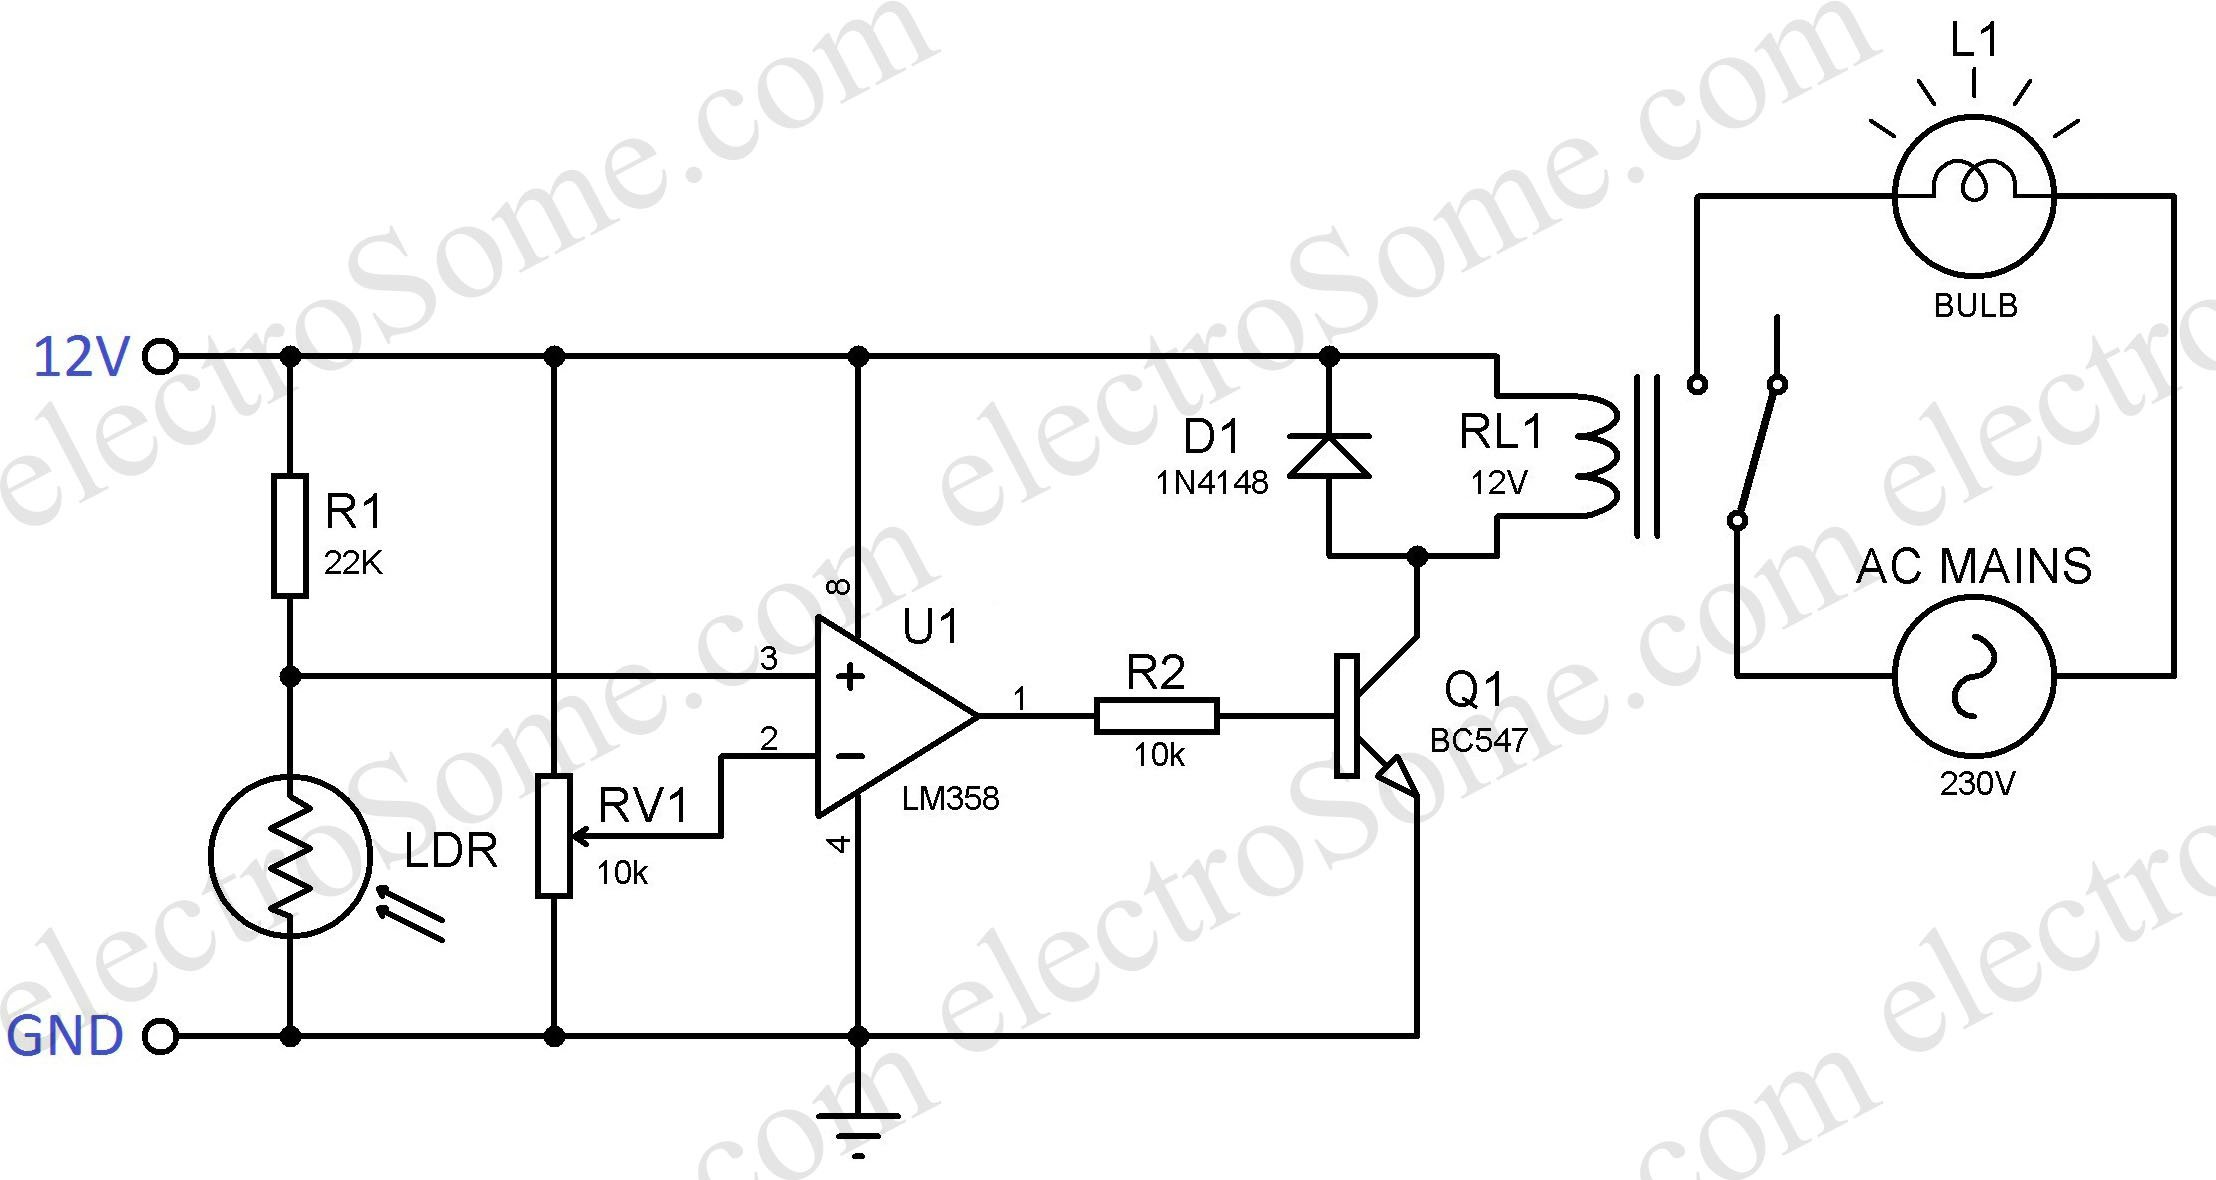 Automatic Night Lamp Using Ldr Op Amp How To Cut Power Off When A Certain Voltage From Sensor Is Circuit Diagram